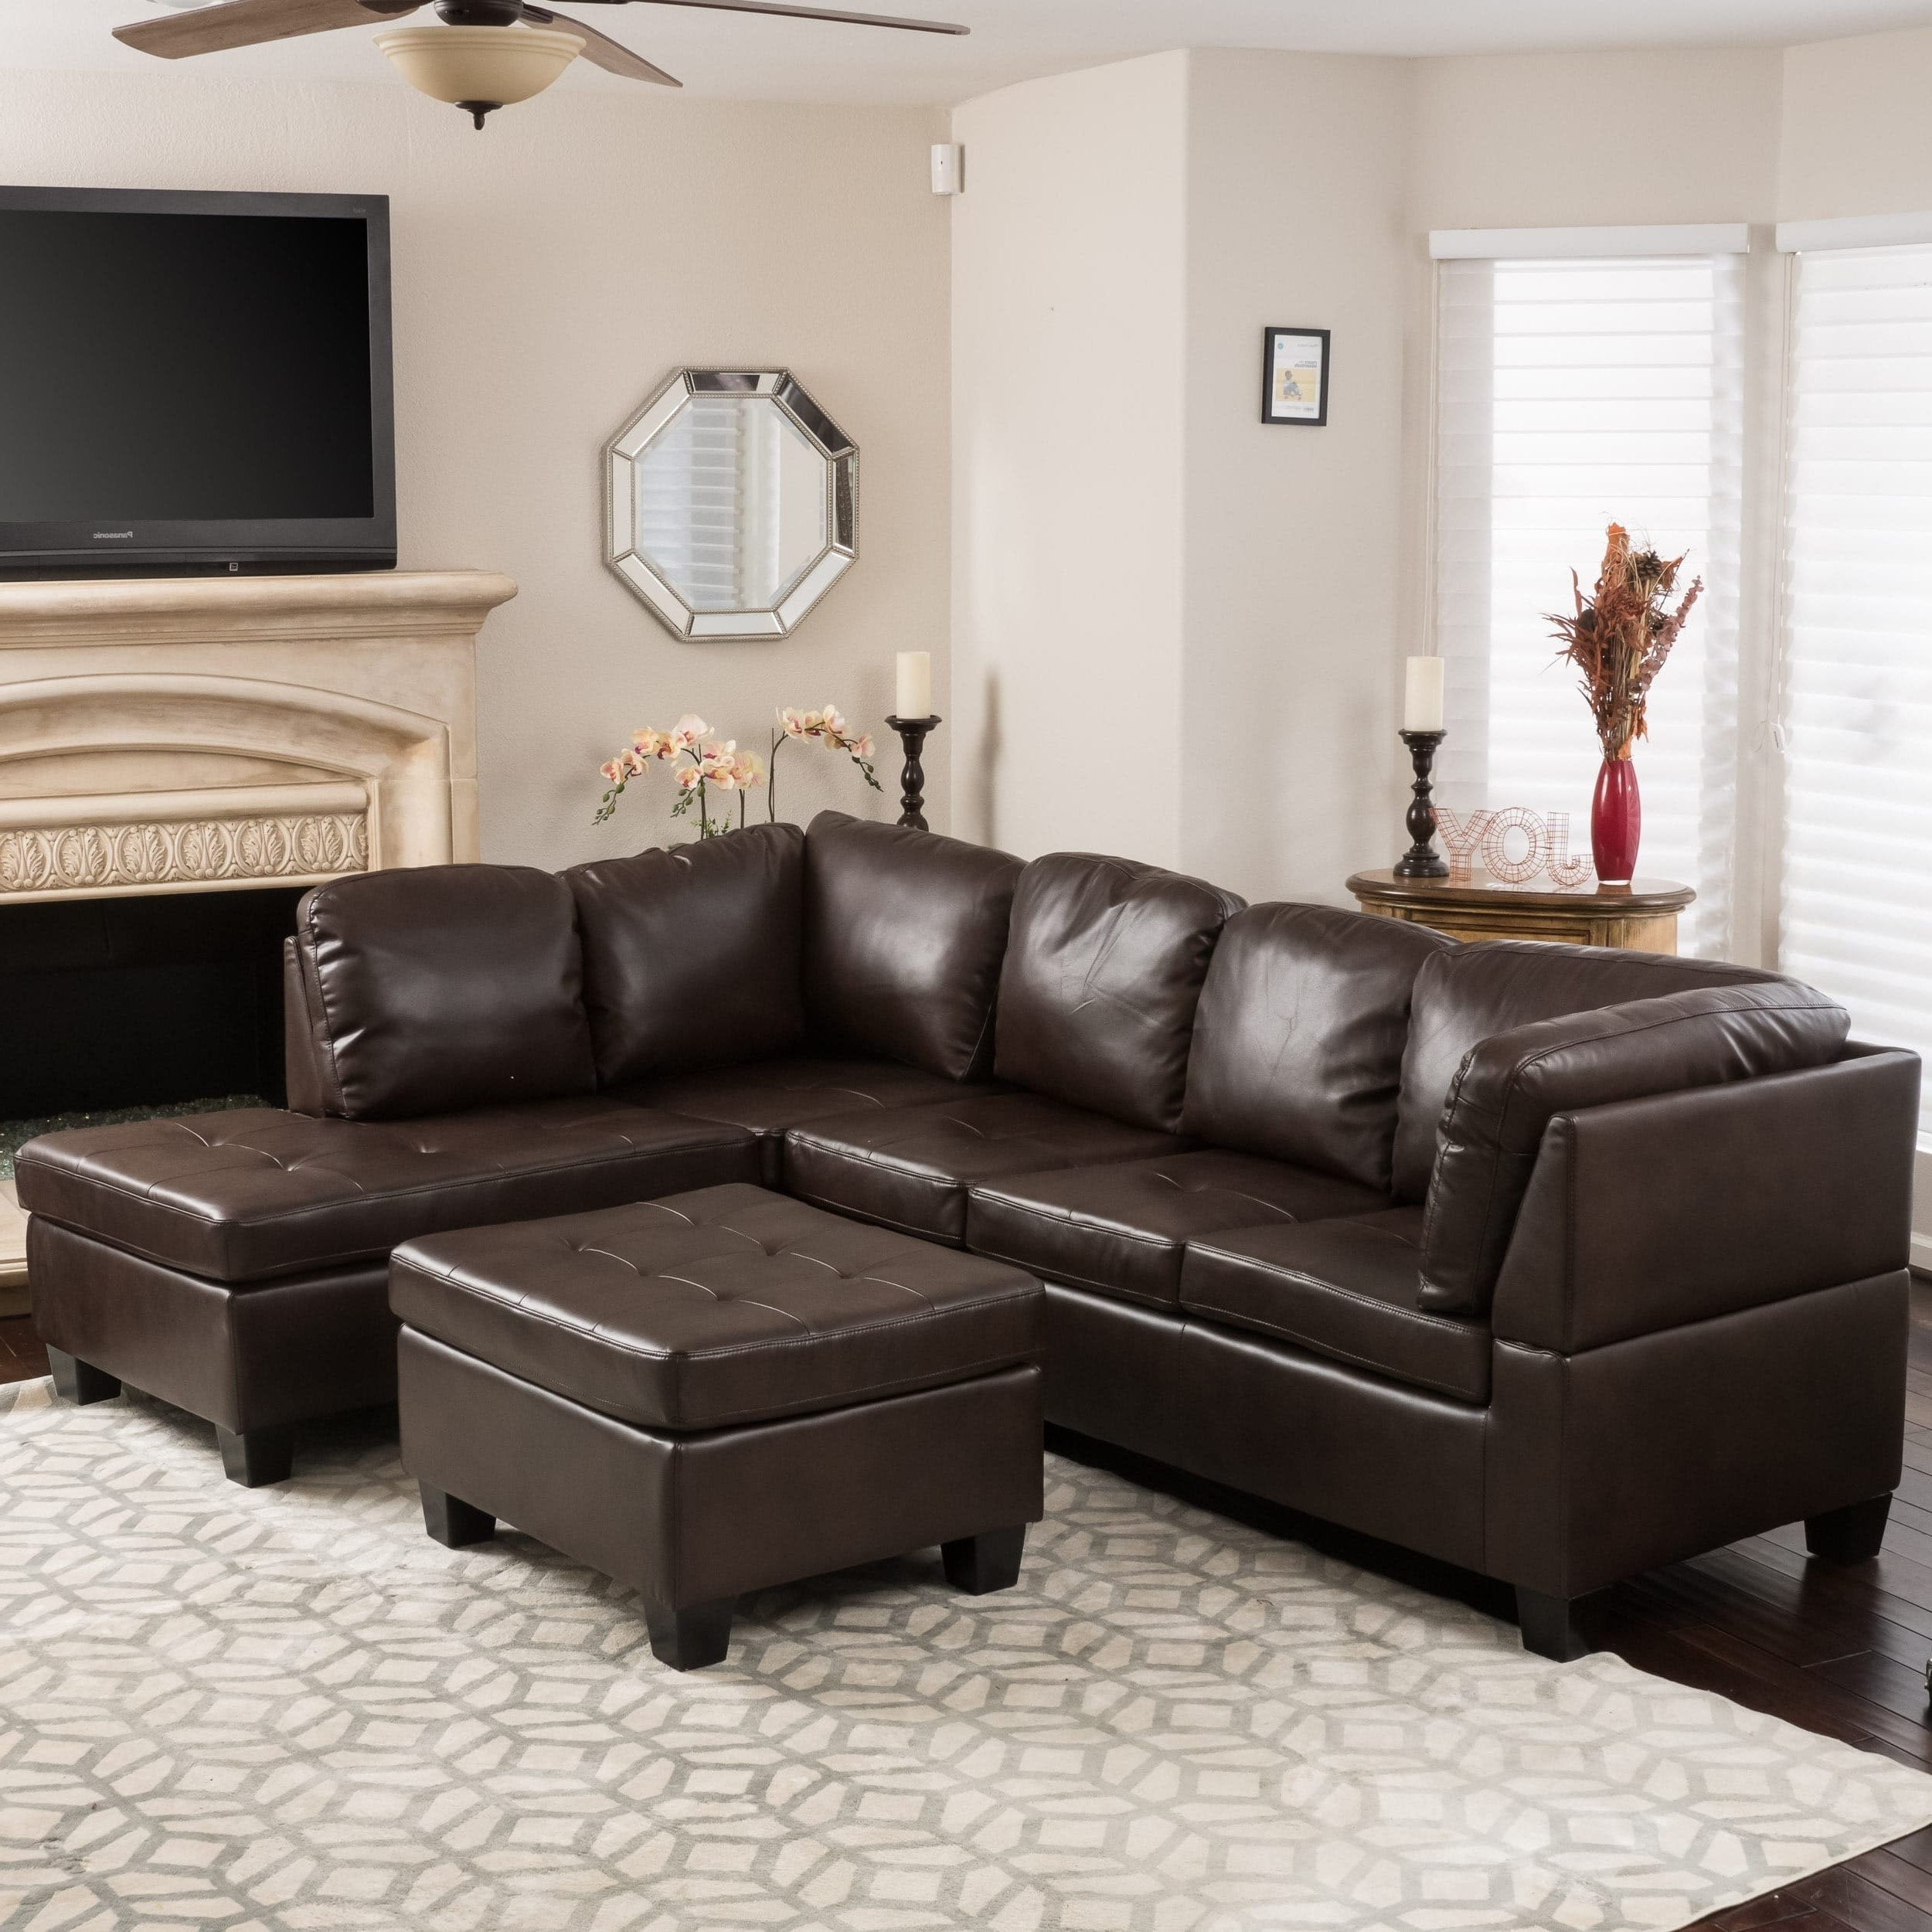 Canterbury 3 Piece Pu Leather Sectional Sofa Setchristopher For Latest Canterbury Leather Sofas (View 3 of 15)